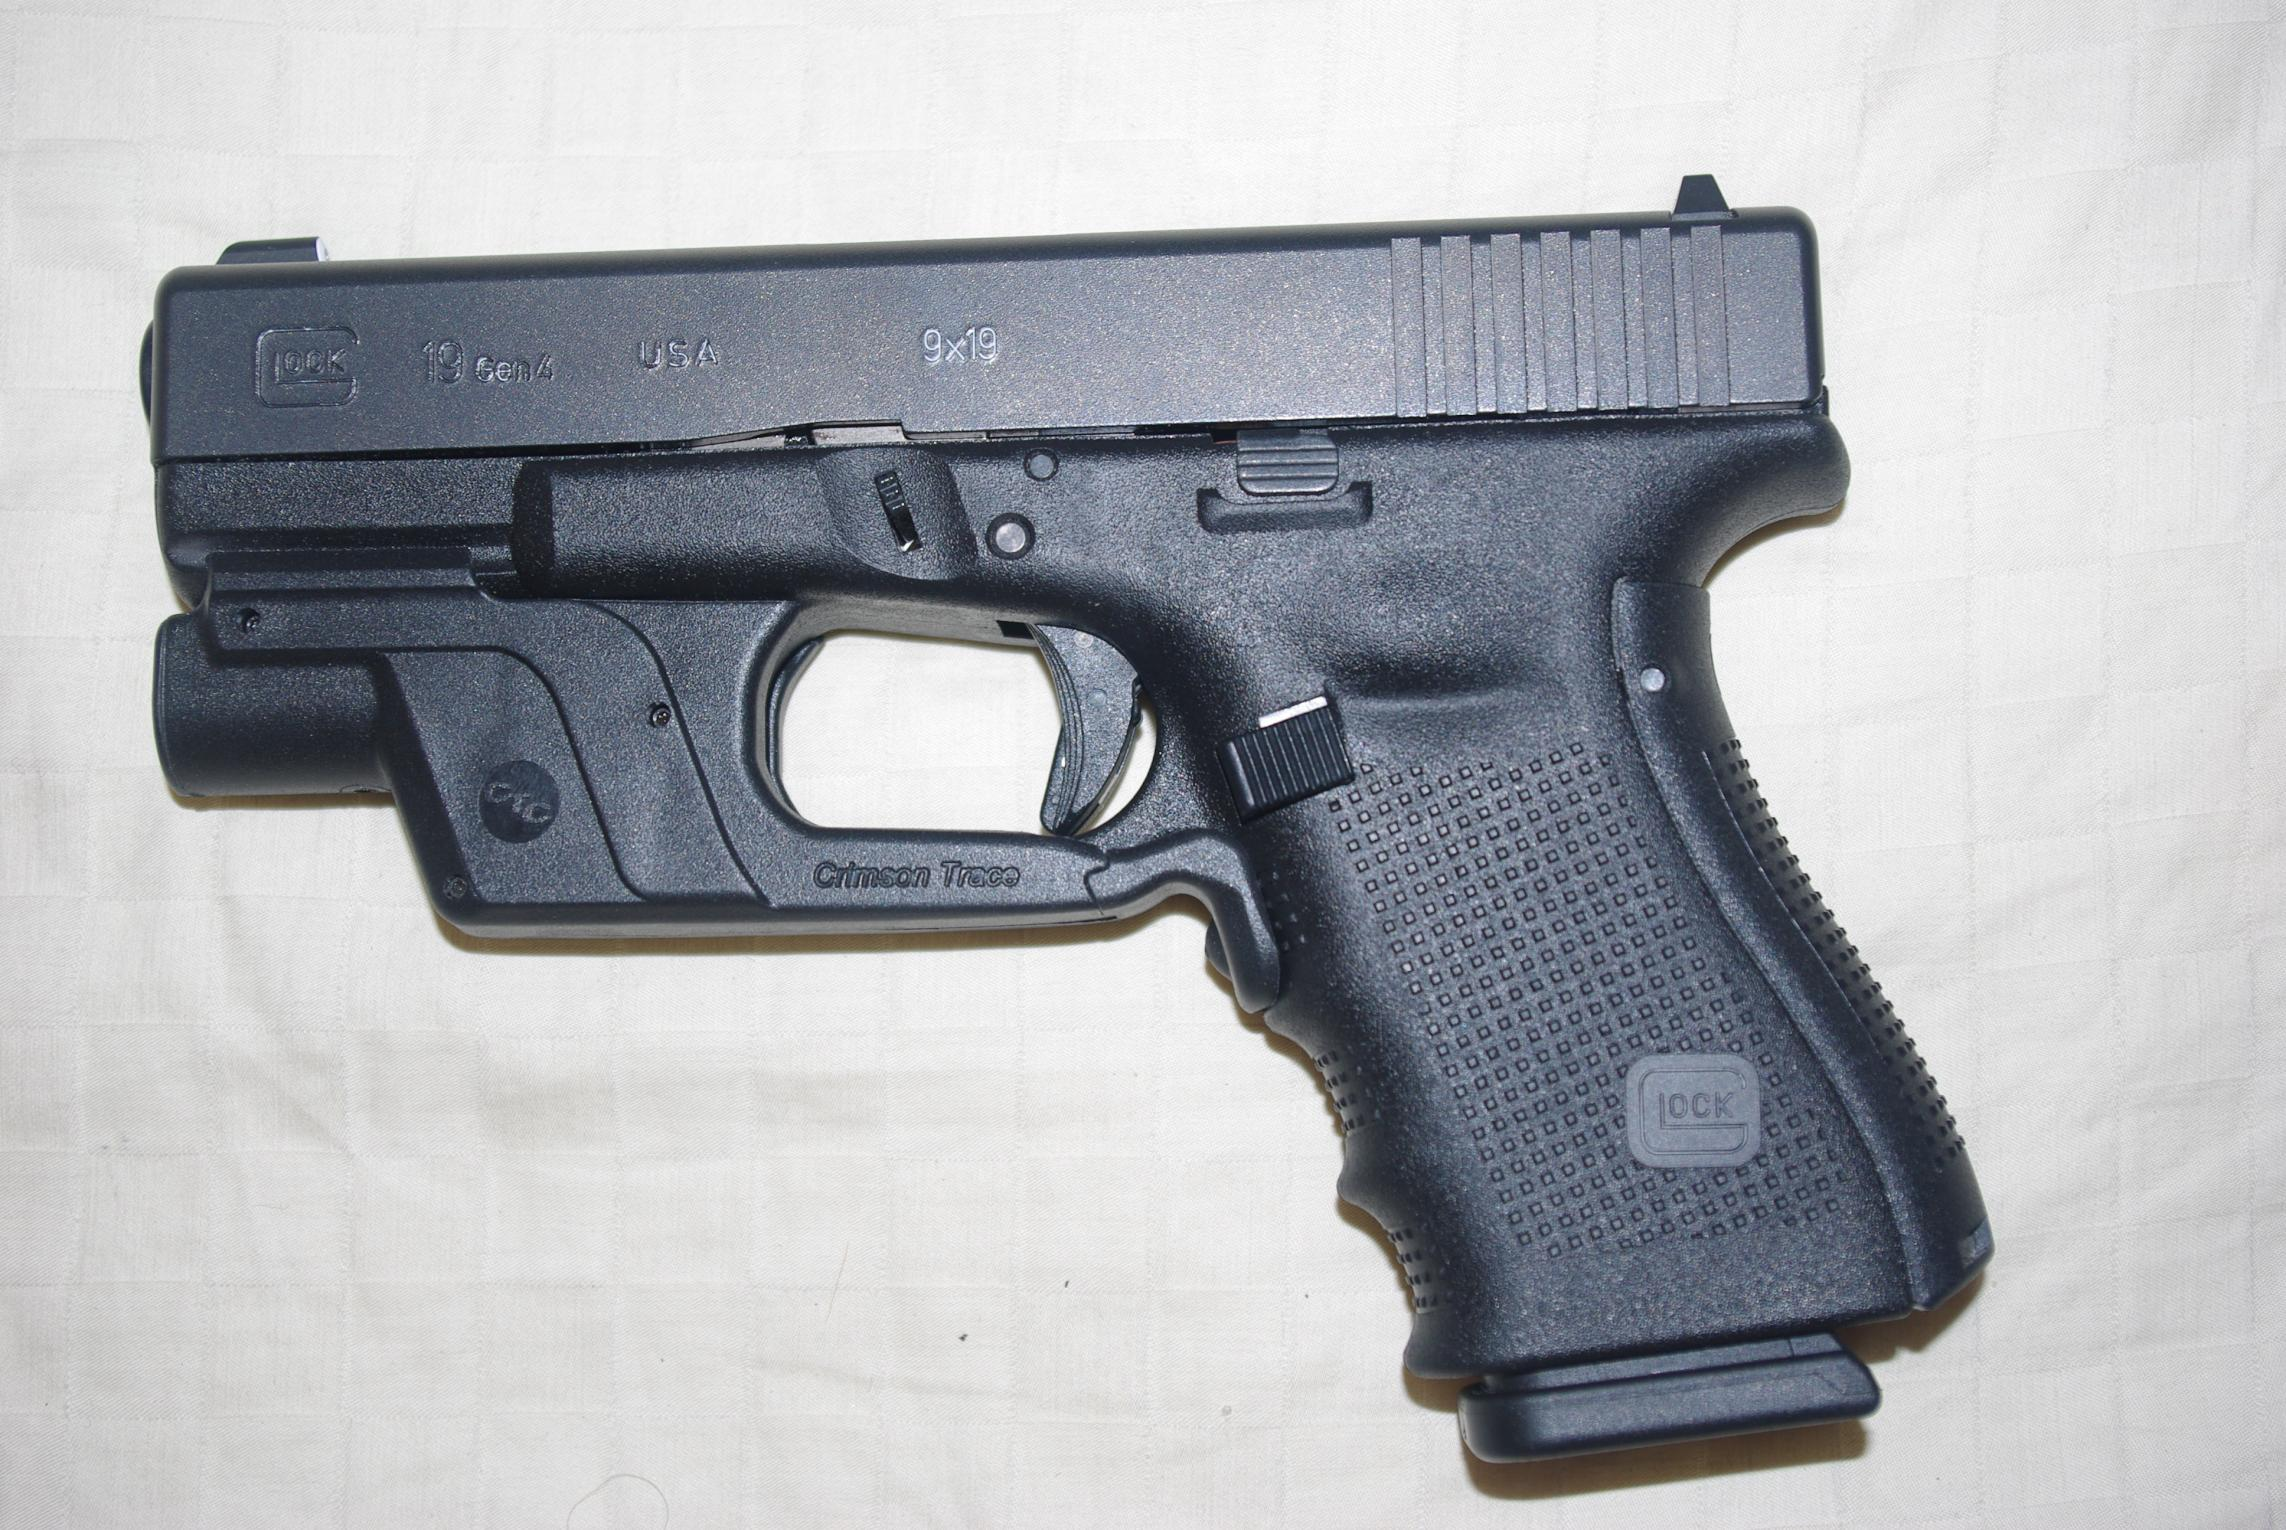 I'm going to start carrying a Glock-imgp6396.jpg